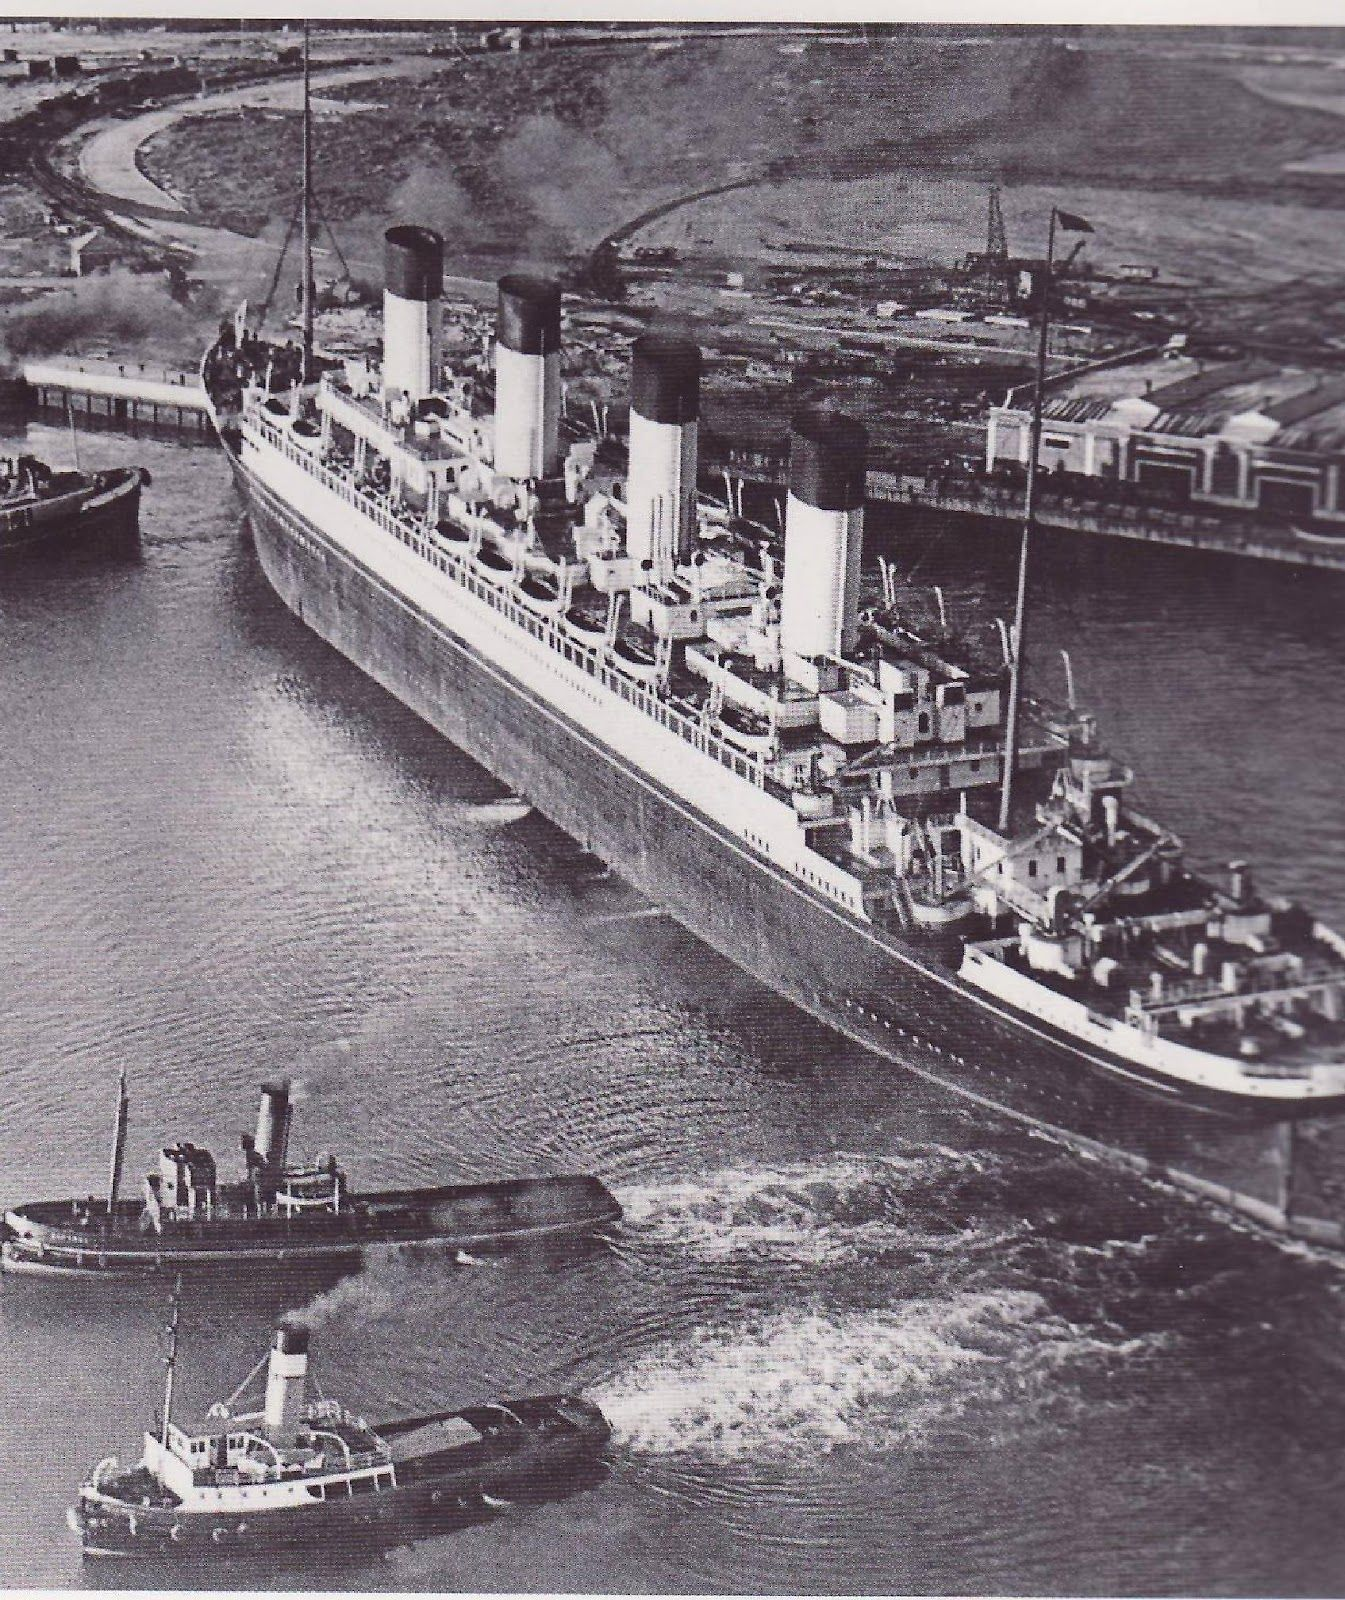 Olympic ship (Olympic): creation history, description, characteristics. White Star Line transatlantic liner 67